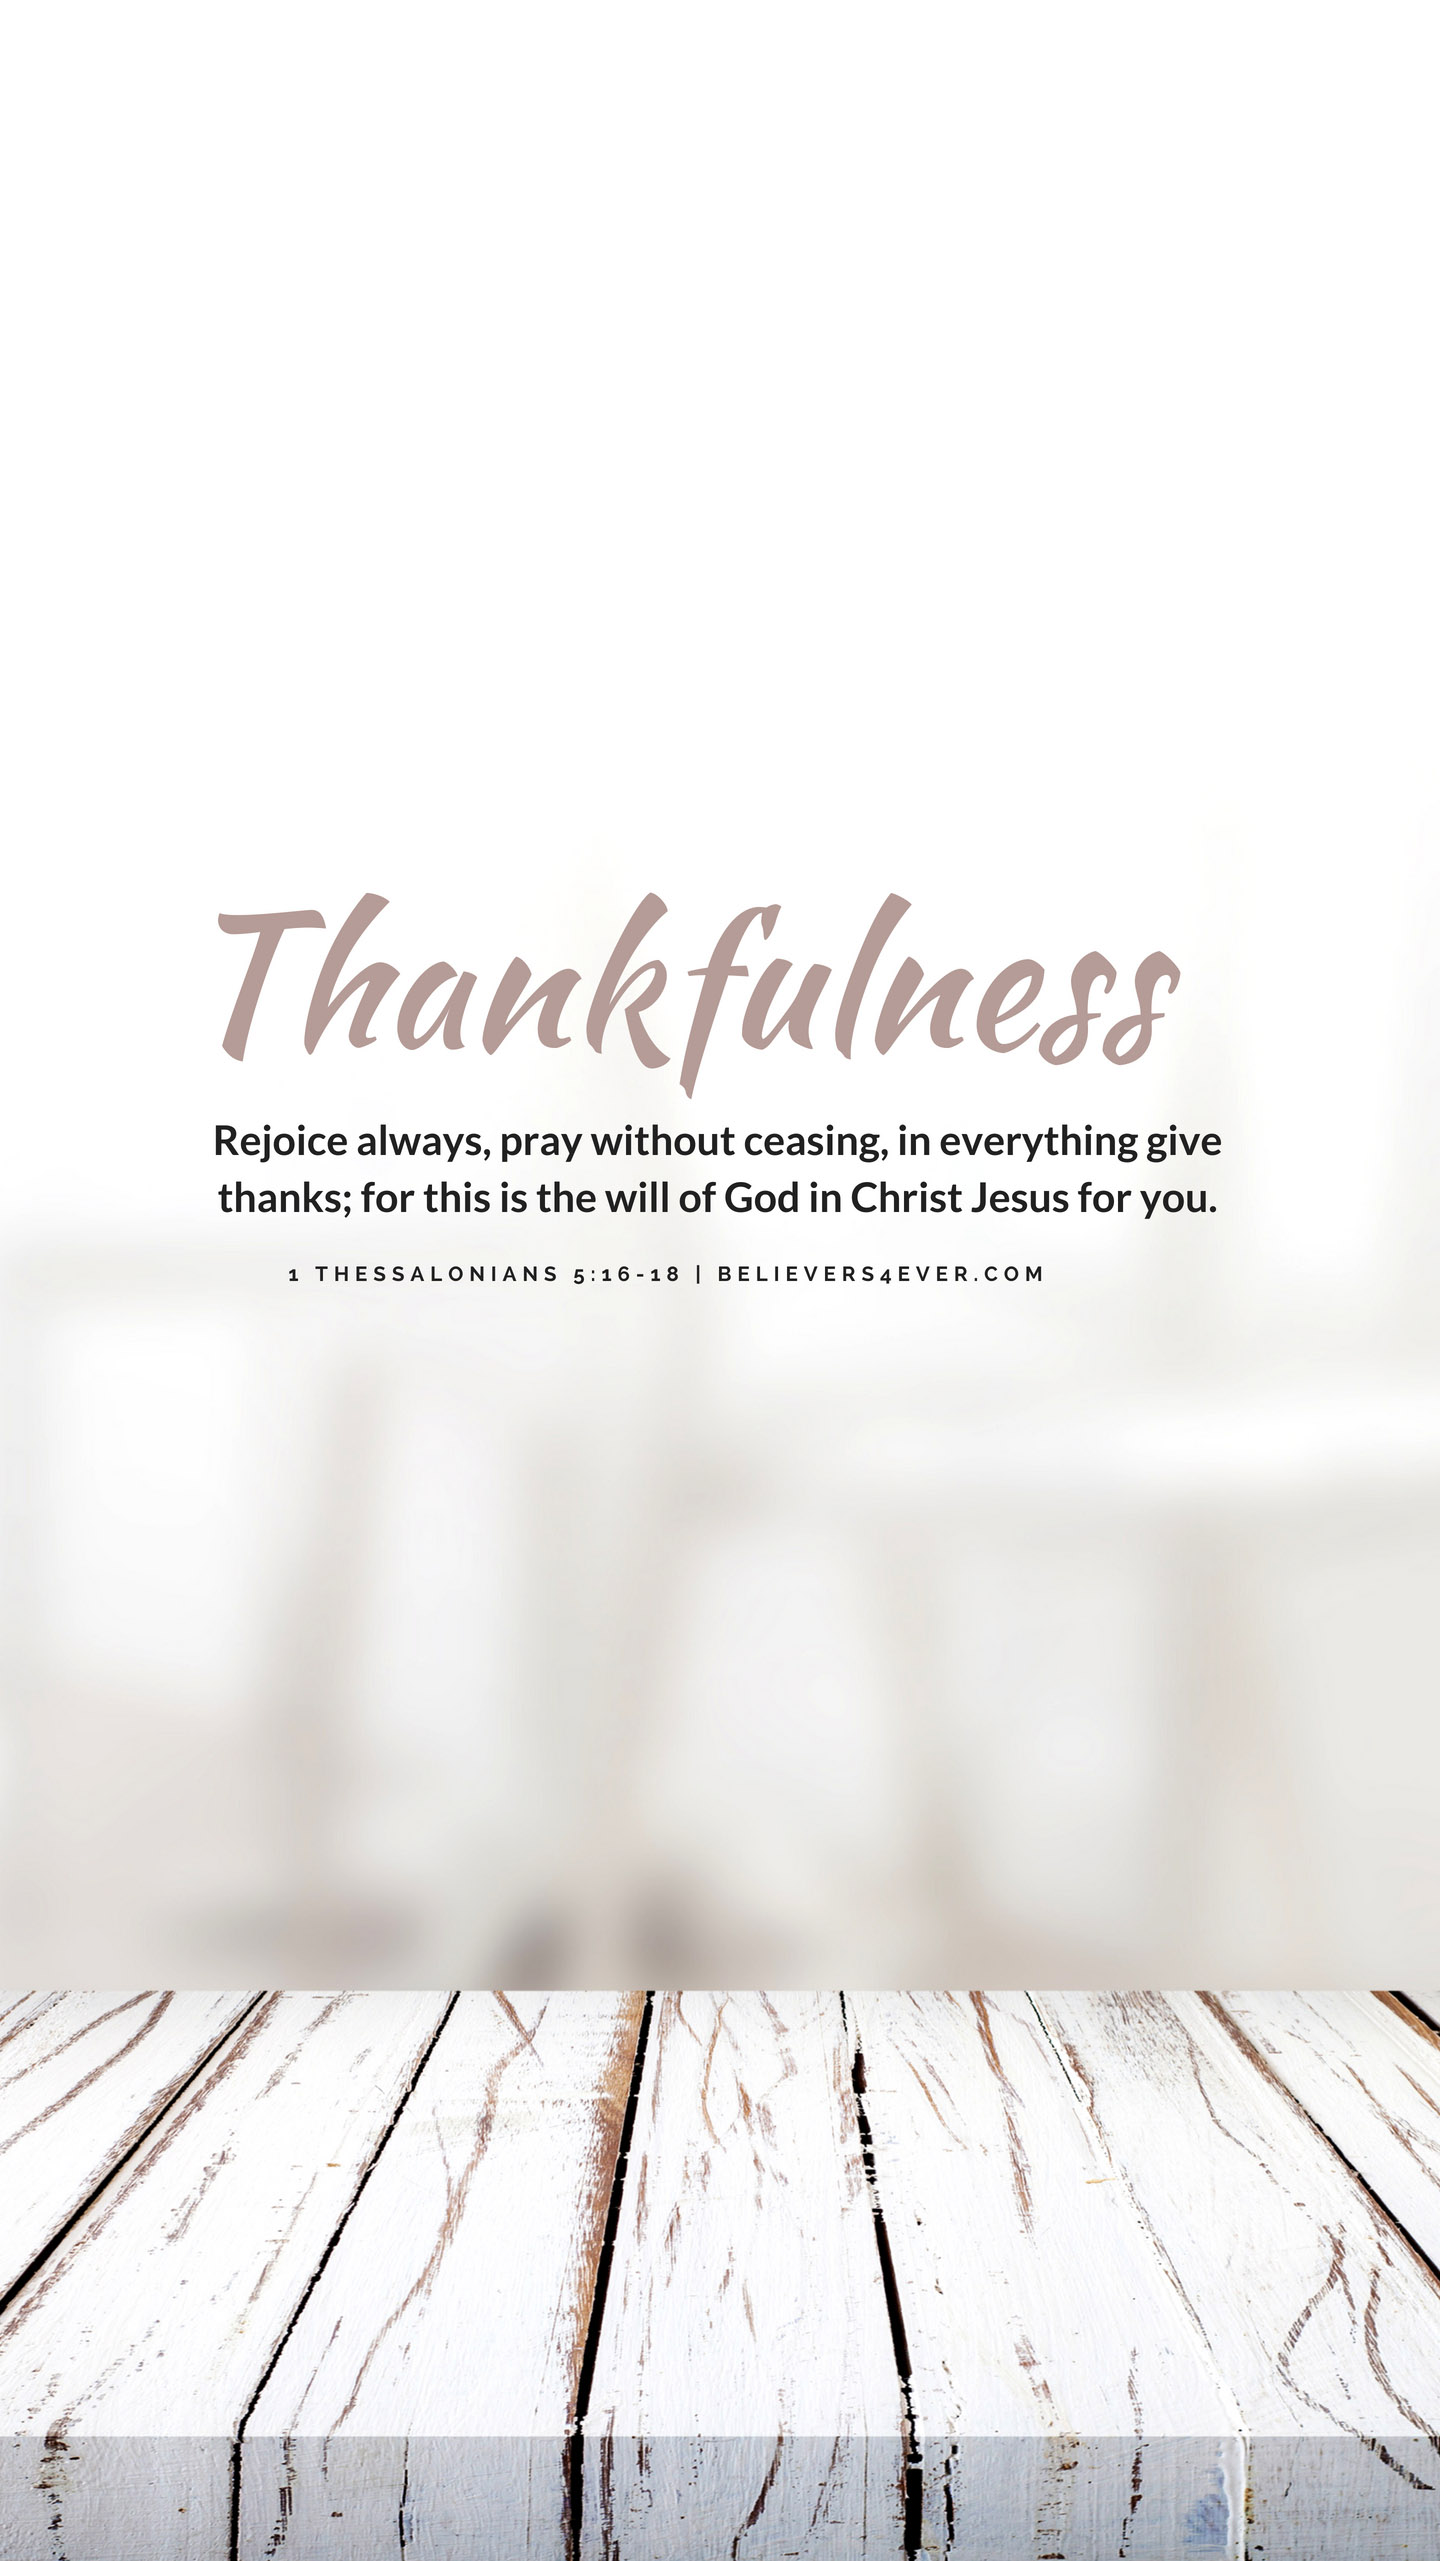 Bible Verse Wallpaper Iphone 6 Thankfulness Believers4ever Com